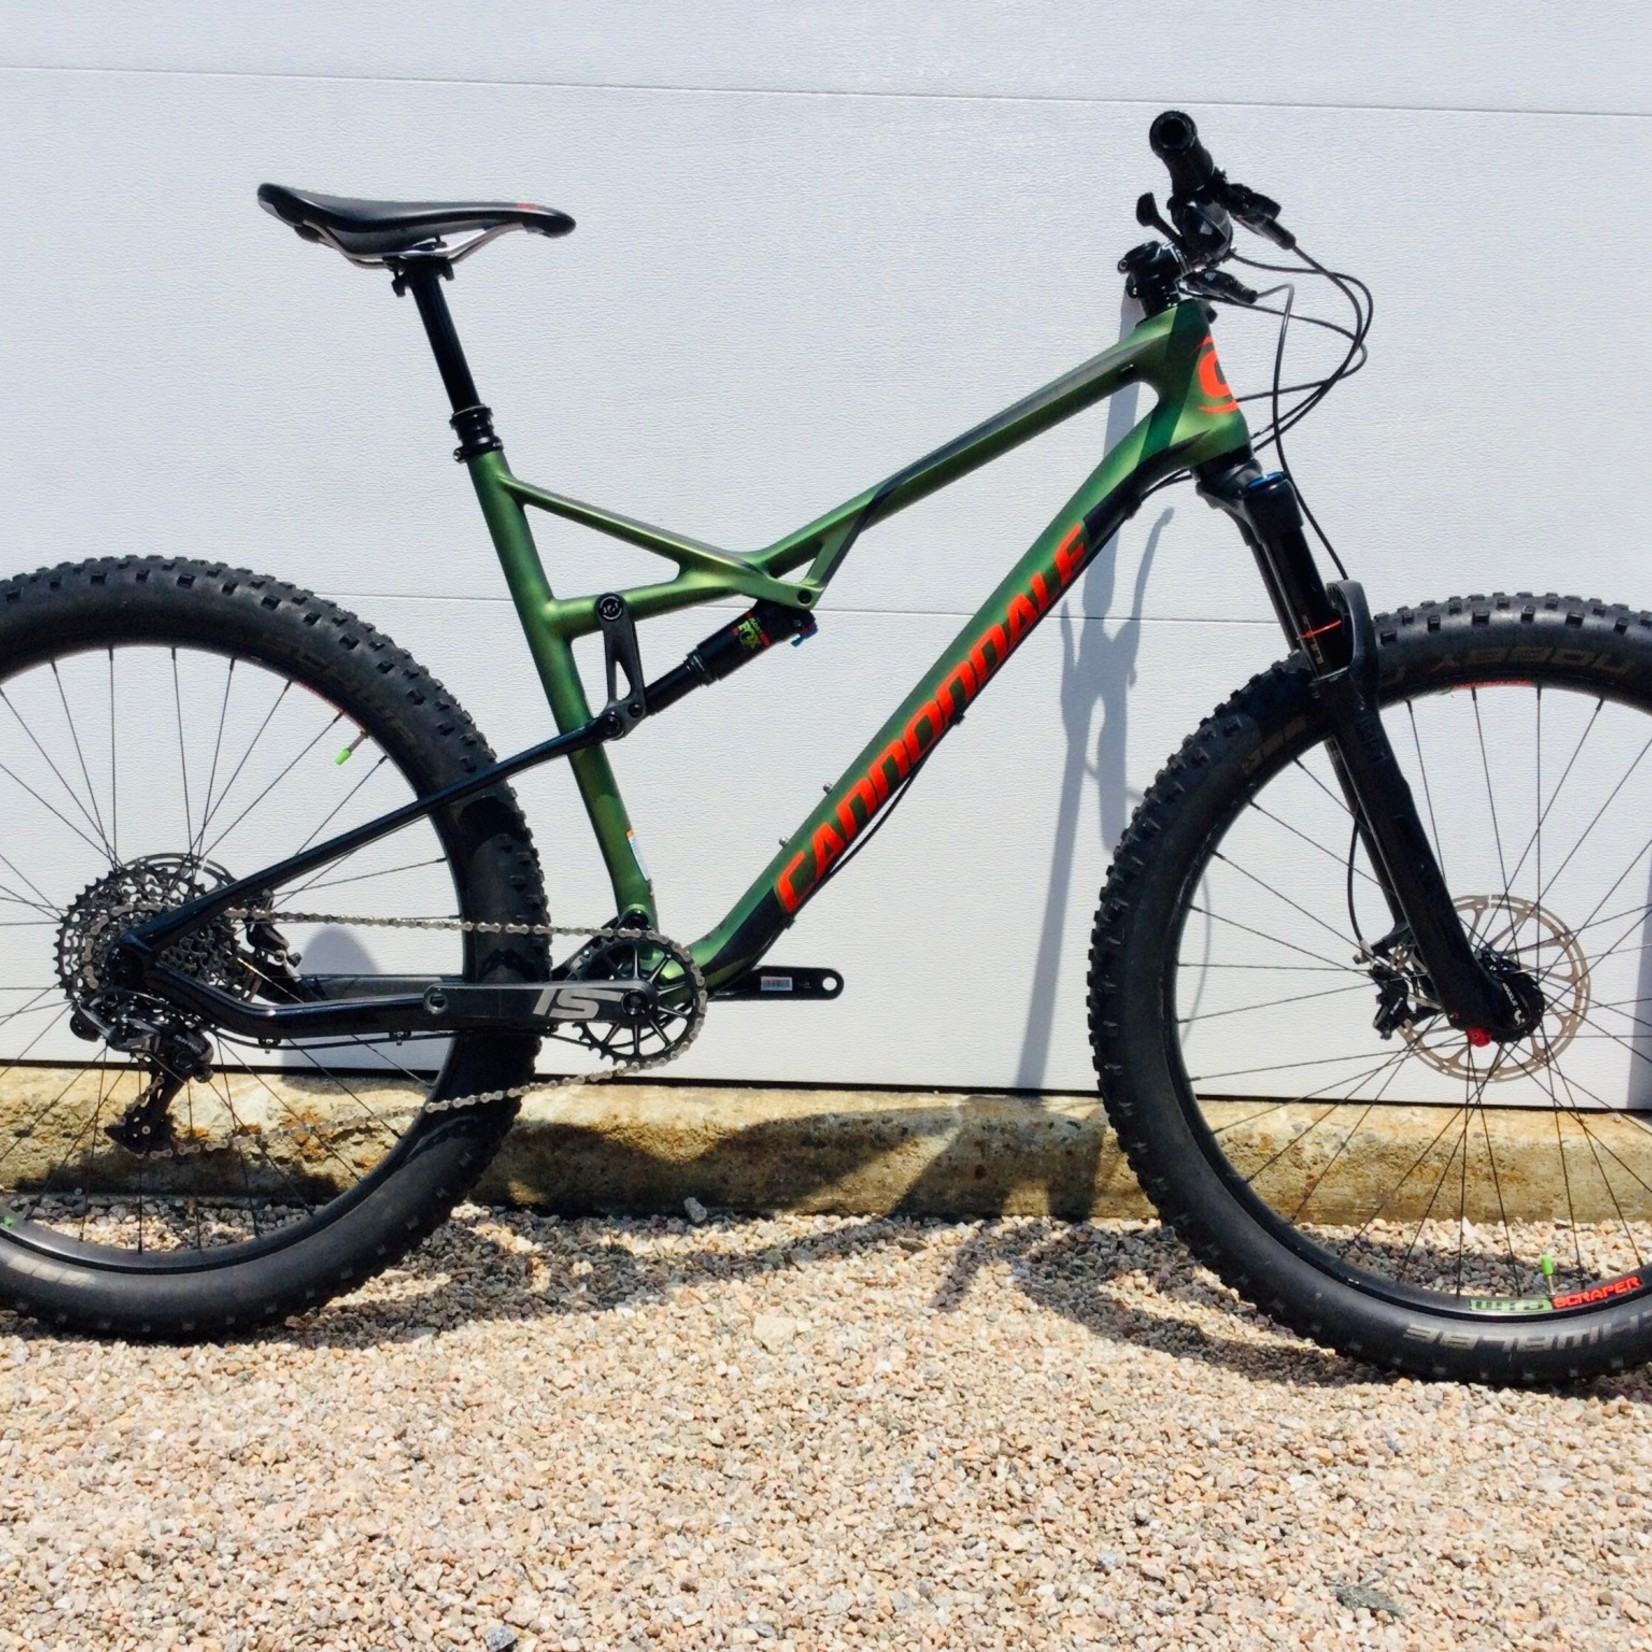 Cannondale 2017 Cannondale Bad Habit Carbon 2 Green XL USED